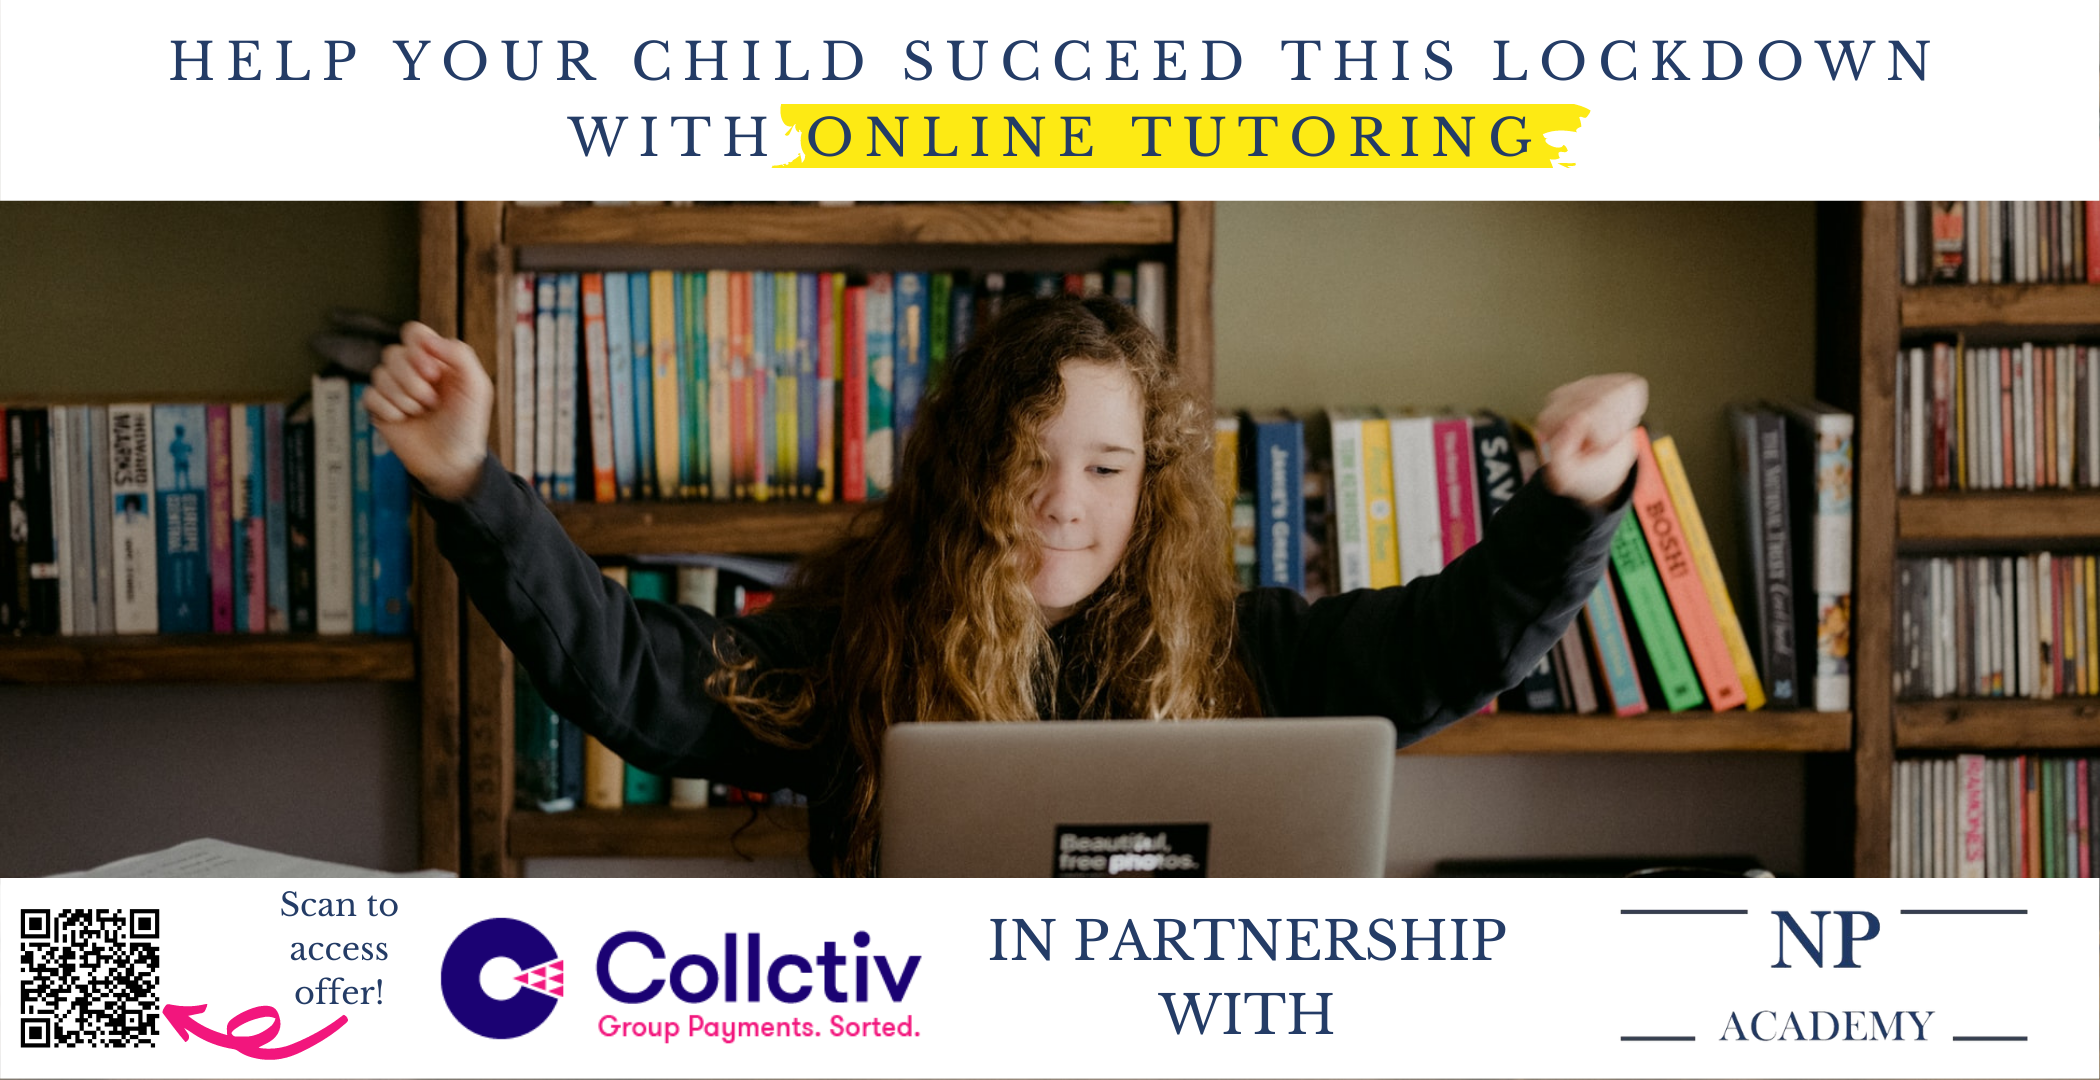 Help Your Child to Succeed this Lockdown with Online Tutoring